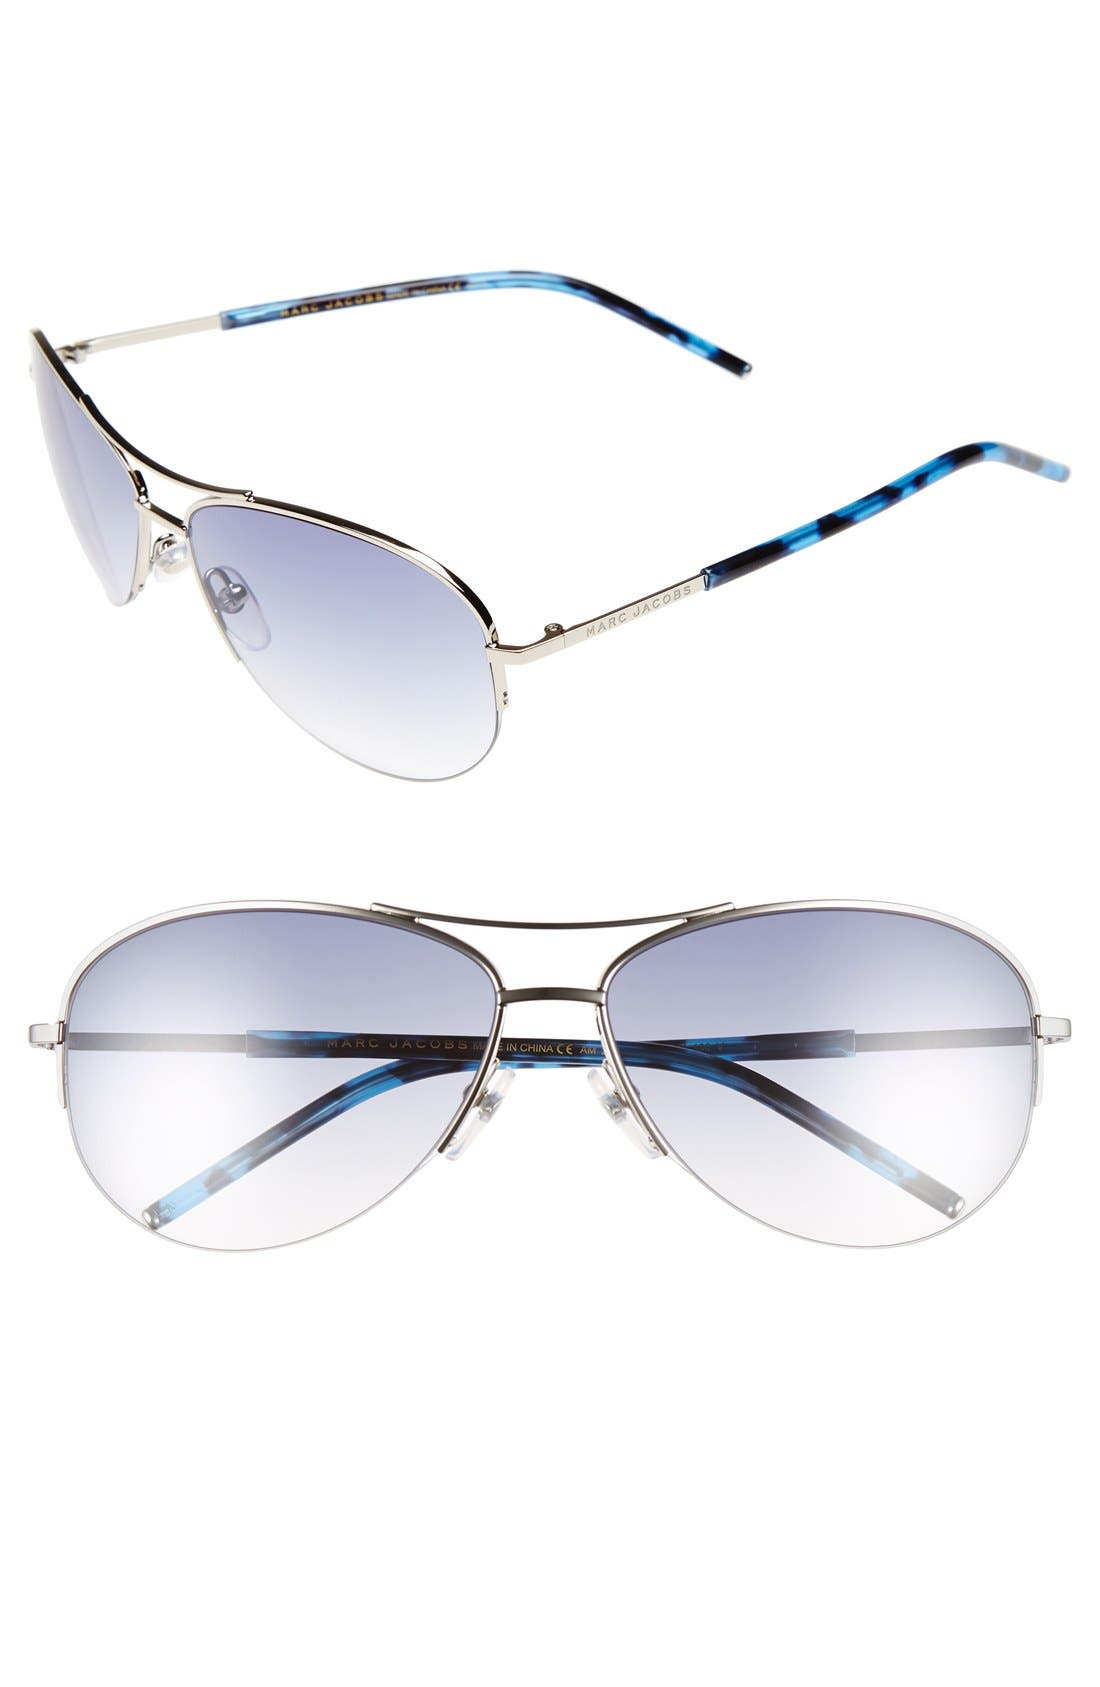 f93aa828083 MARC JACOBS Sunglasses for Women